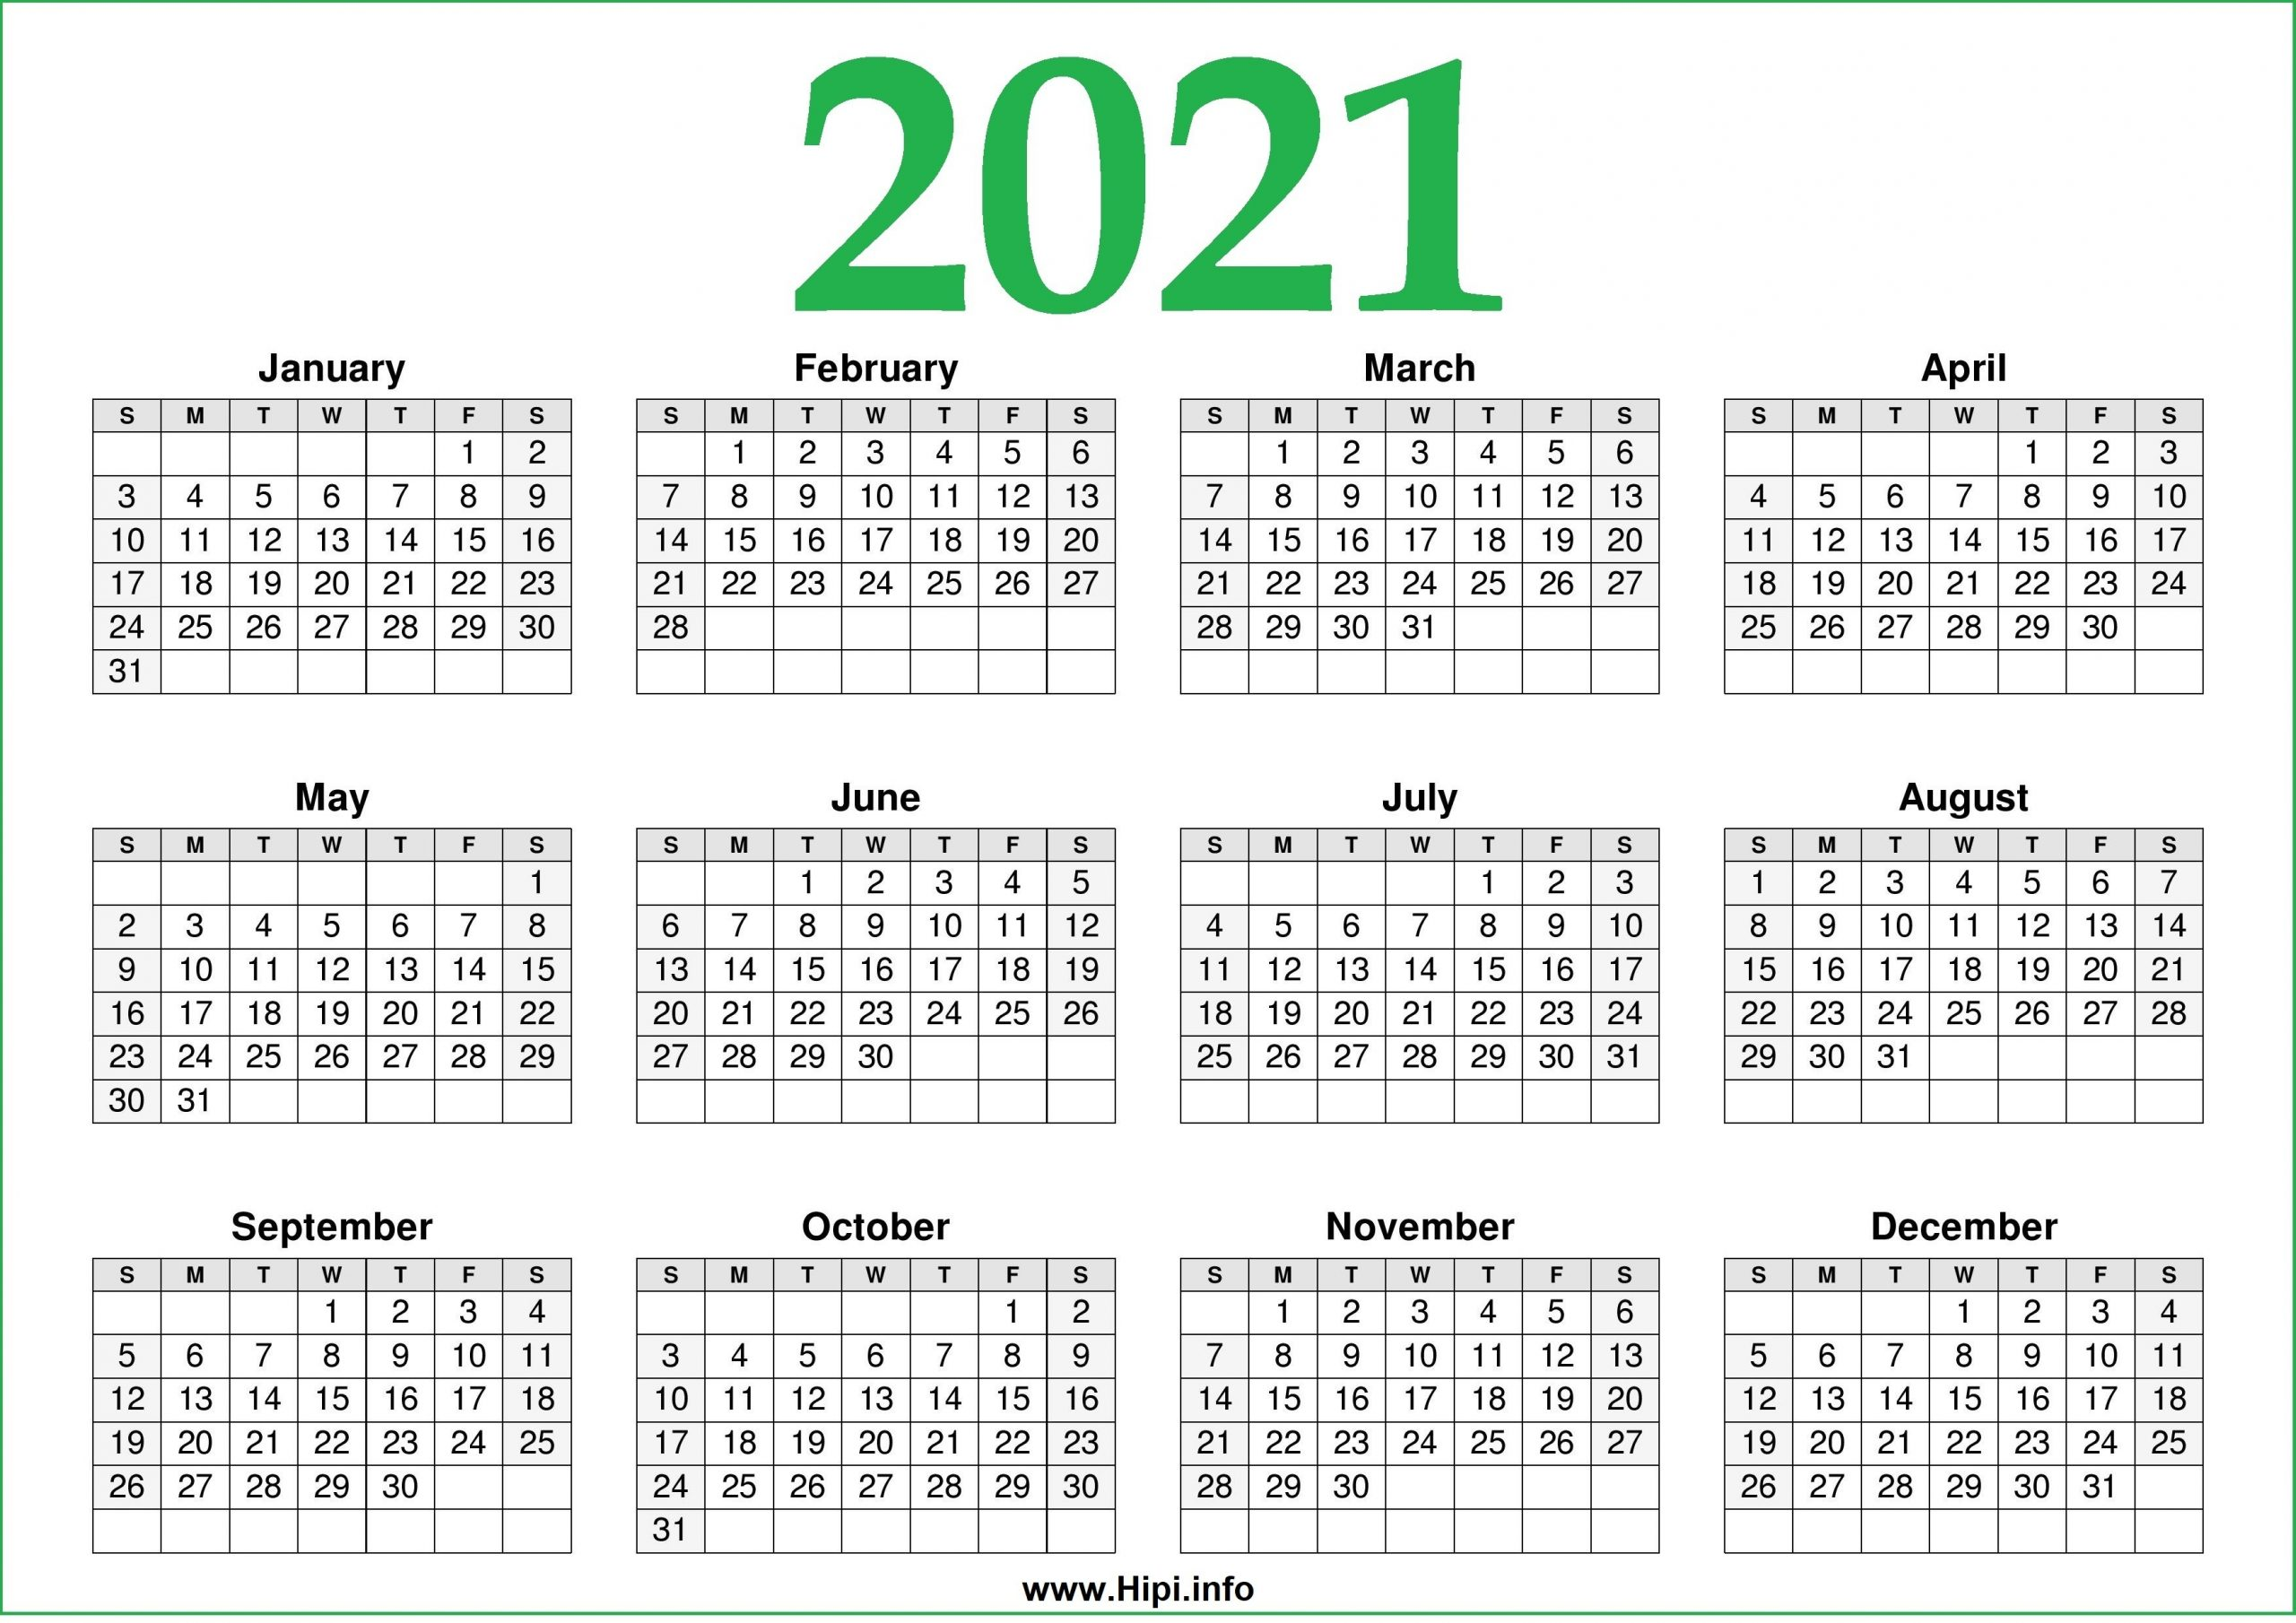 2021 Calendar Printable One Page Free – Free Download - Hipi-Print Free 2021 Calendar Without Downloading